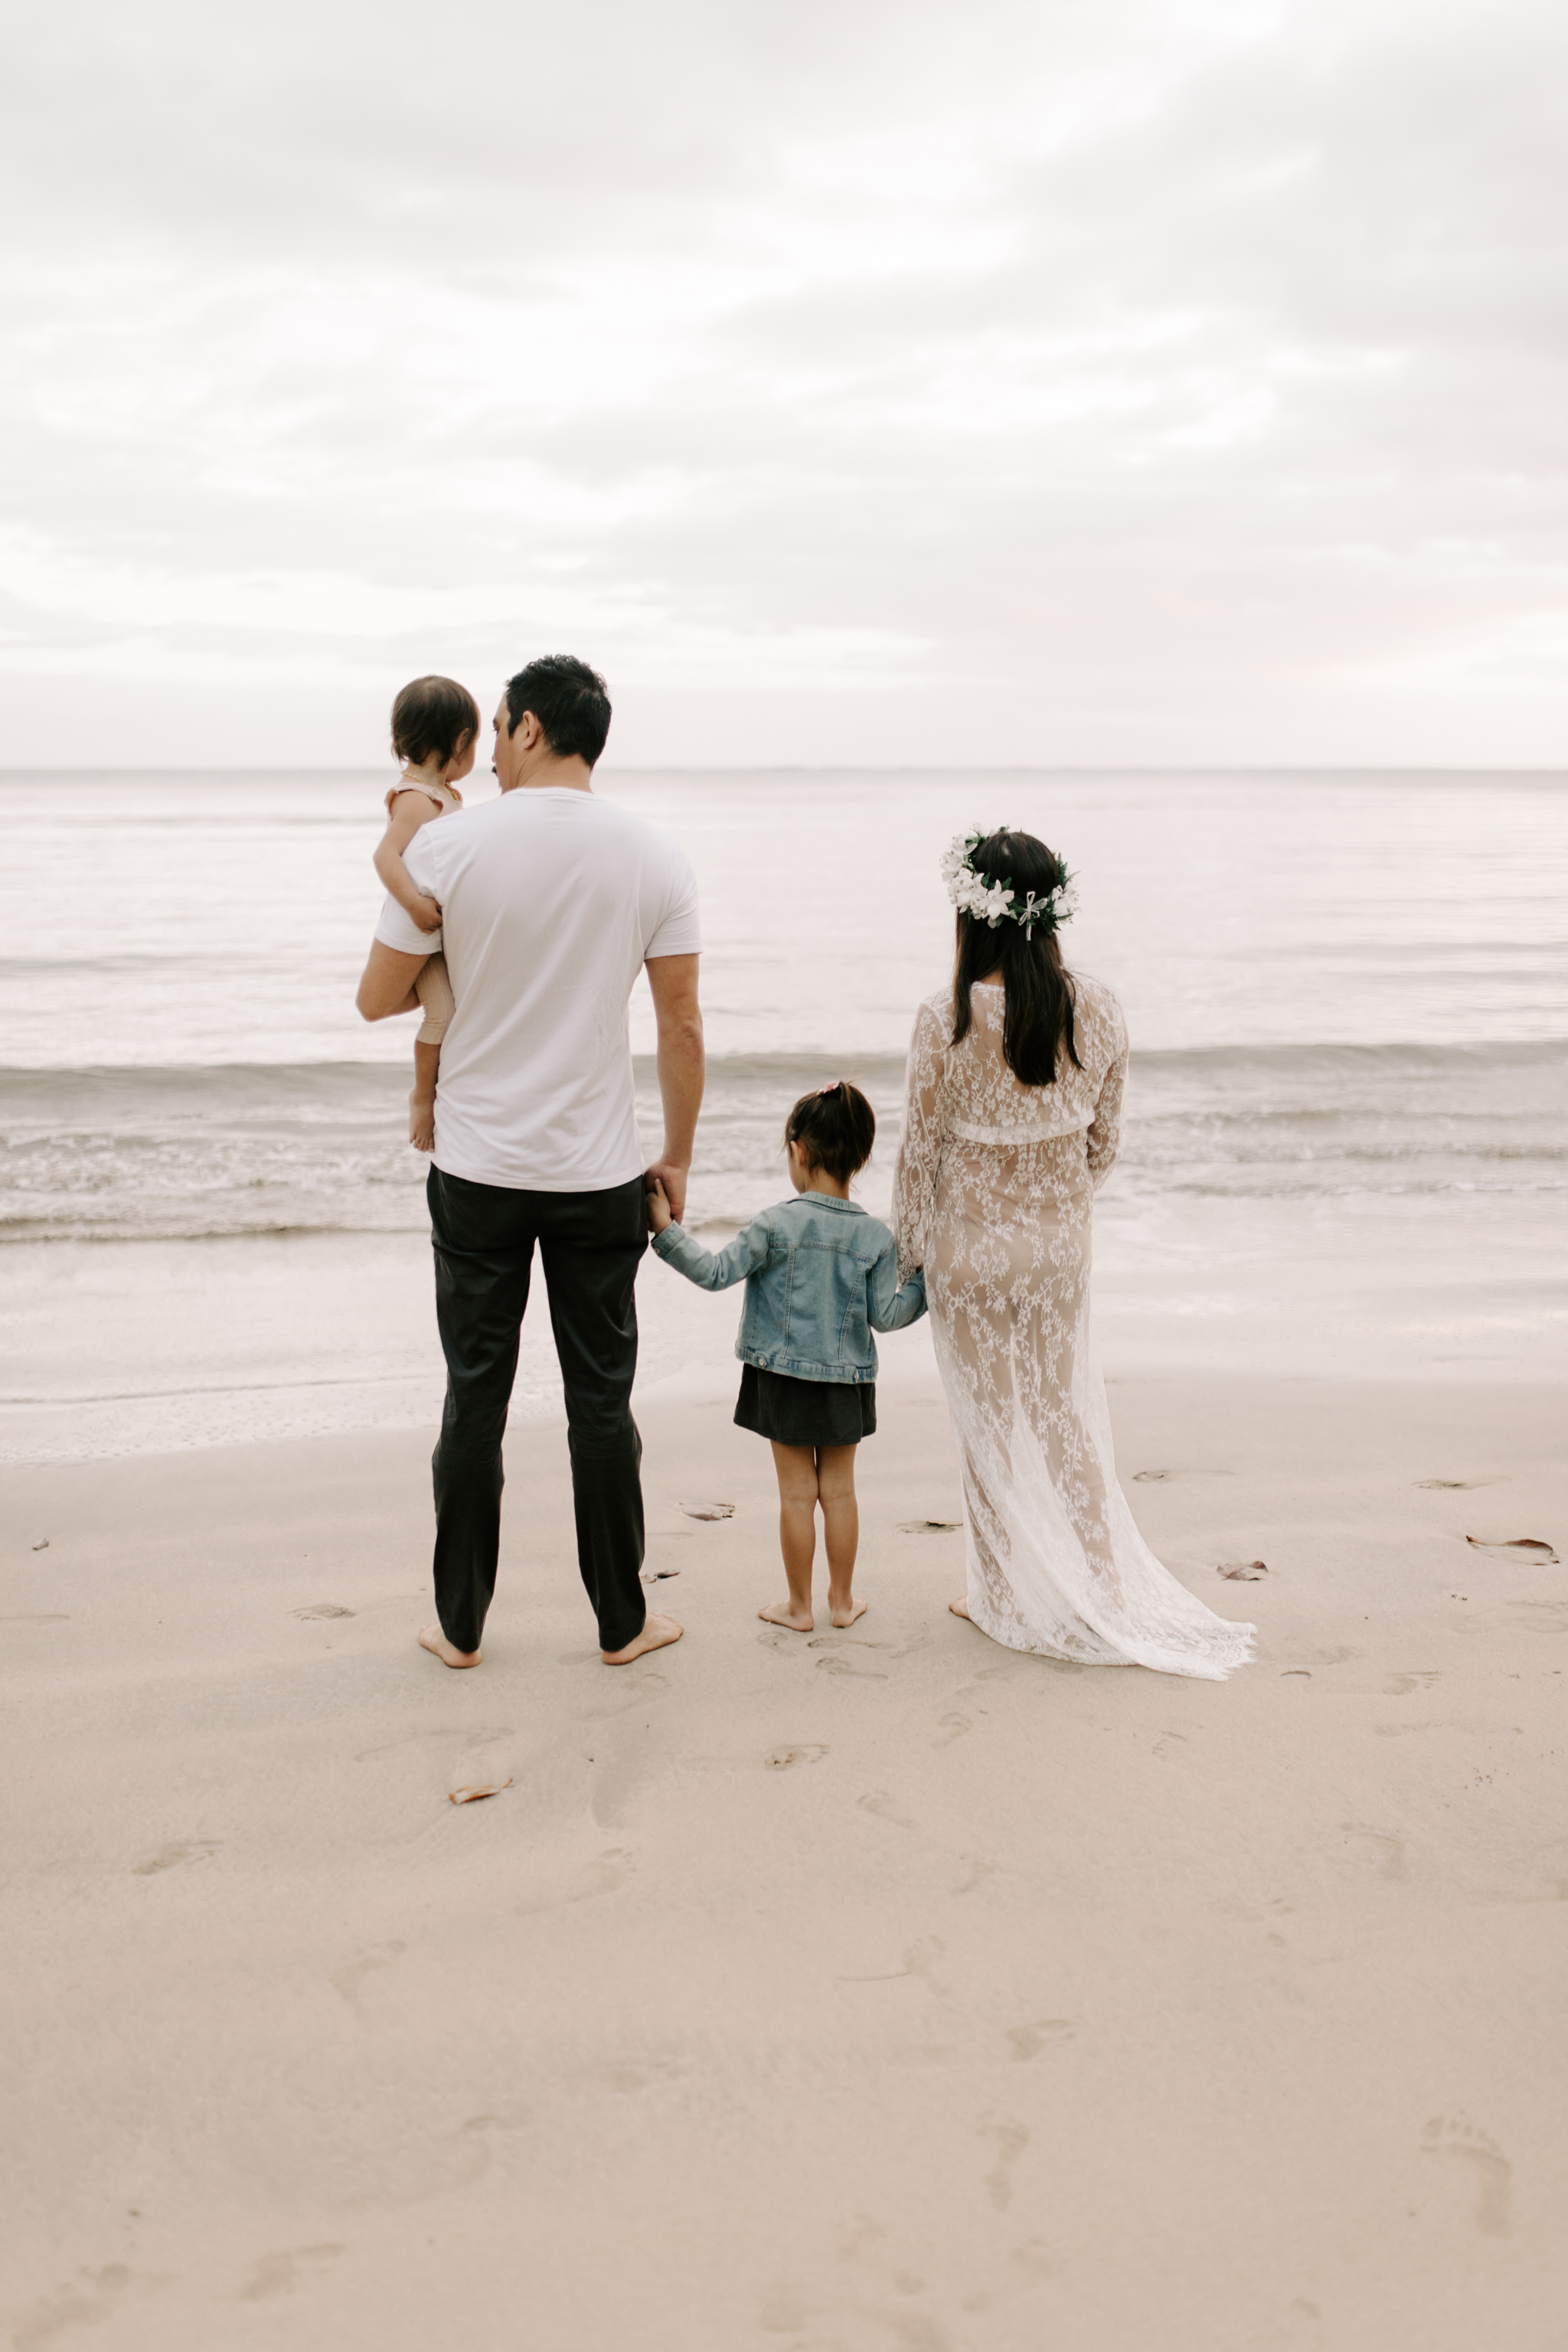 Whimsical Kahana Bay Maternity Session by Hawaii Family Photographer Desiree Leilani